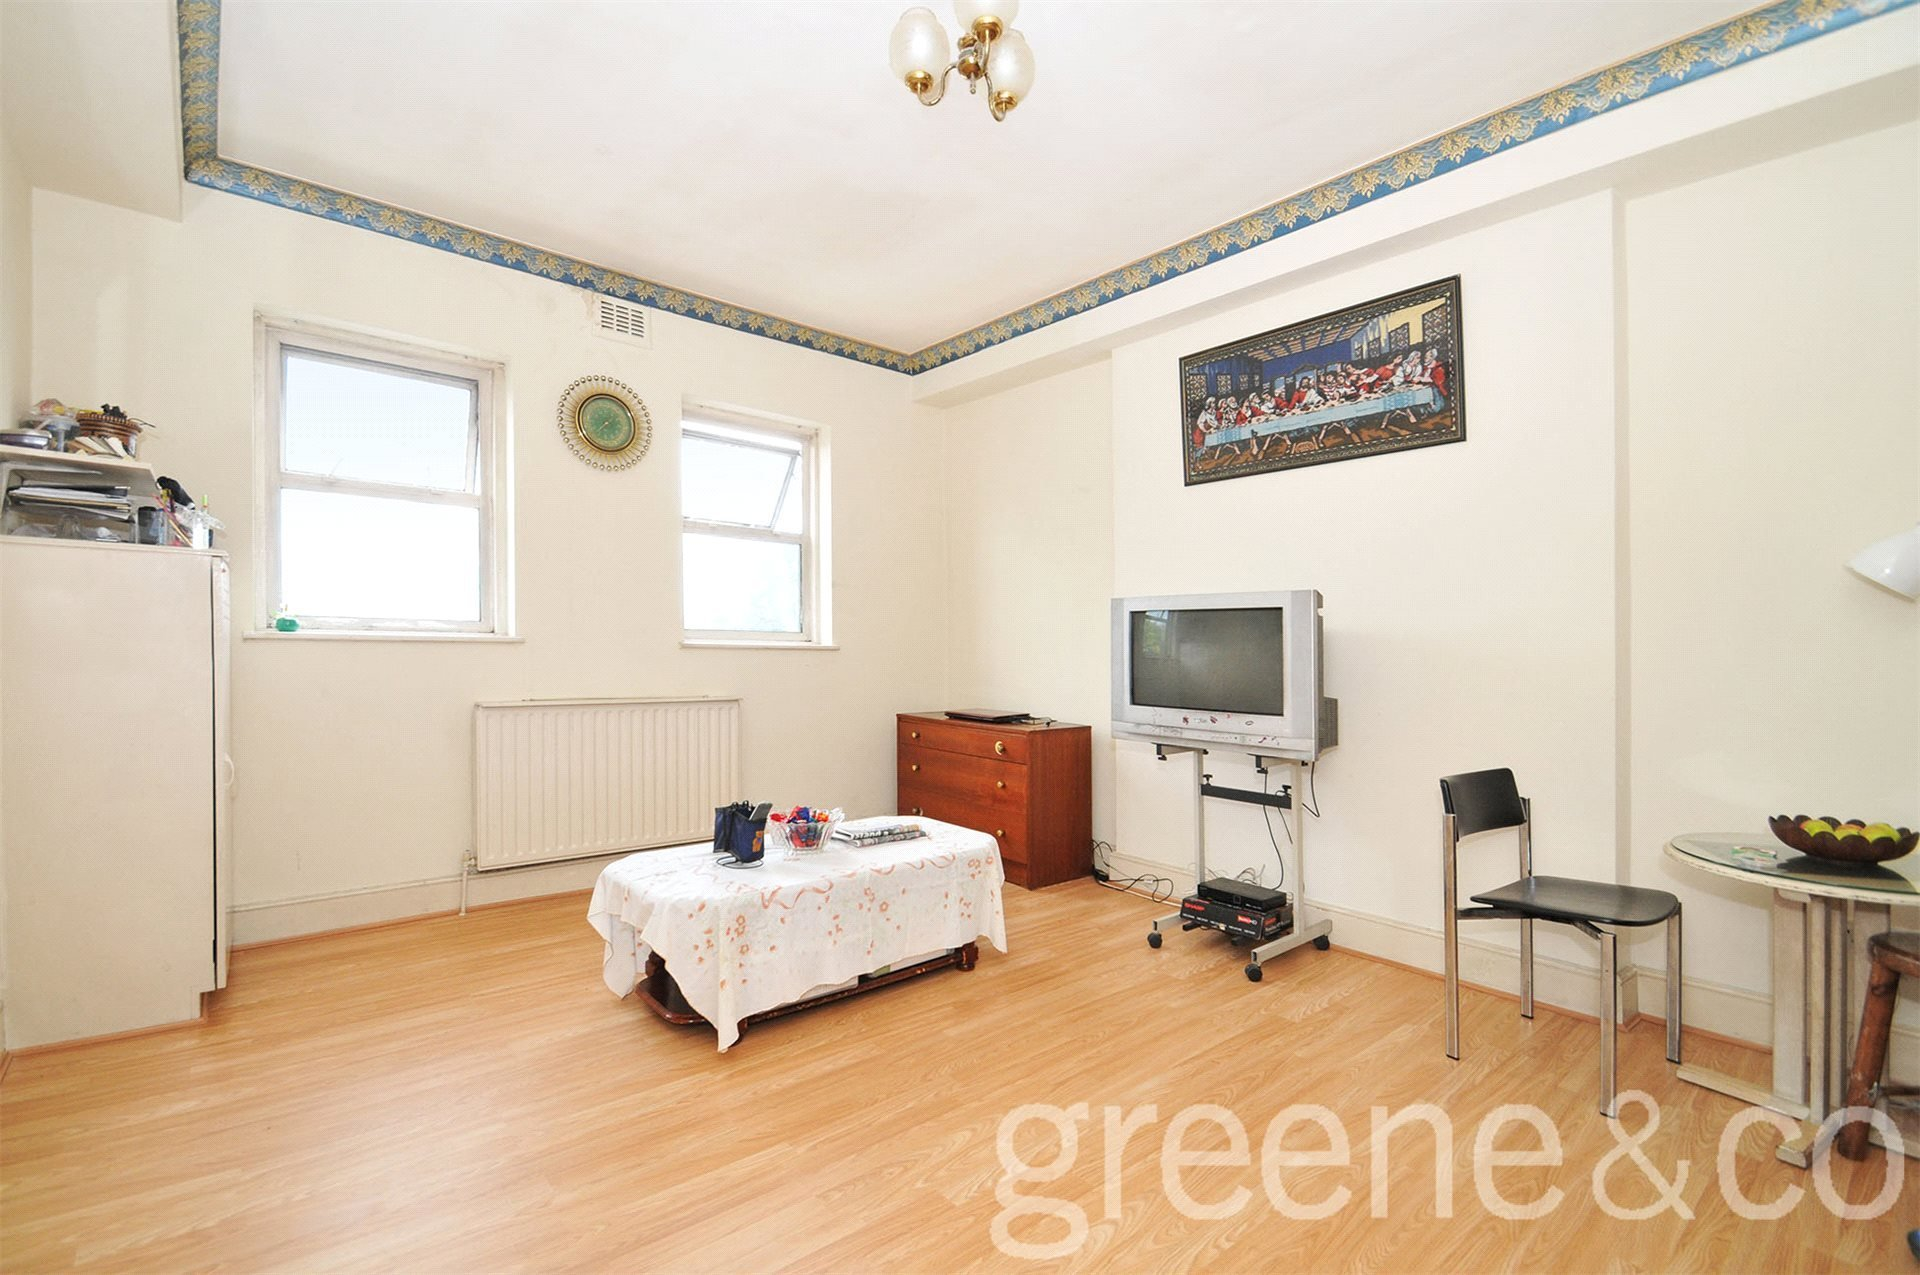 Best 2 Bedroom Apartment For Sale In Harrow Road Maida Vale London W9 Css150289 Greene Co With Pictures